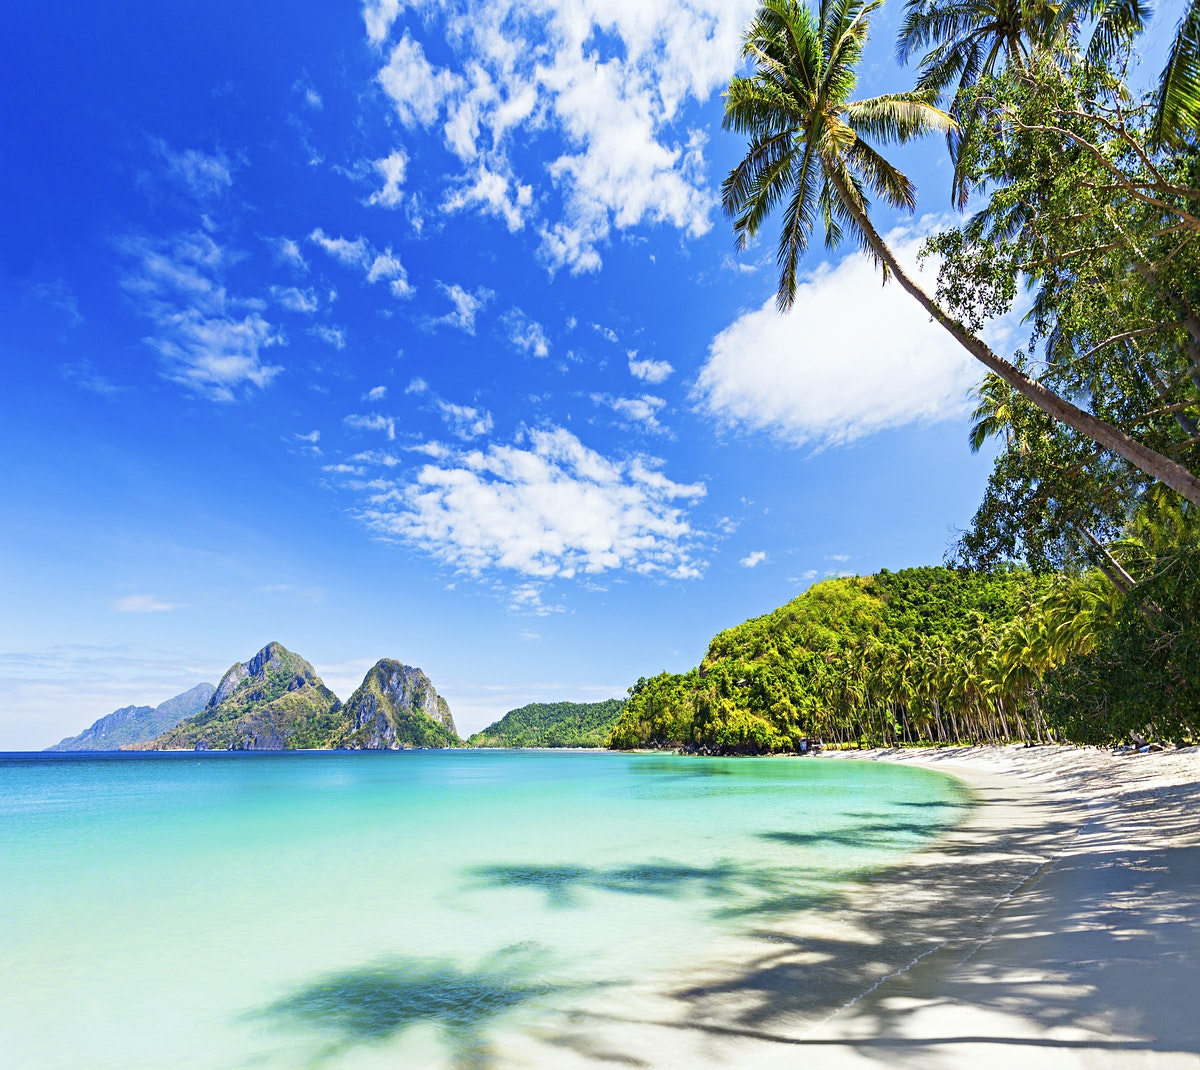 Philippines Beach: Philippines - Lonely Planet